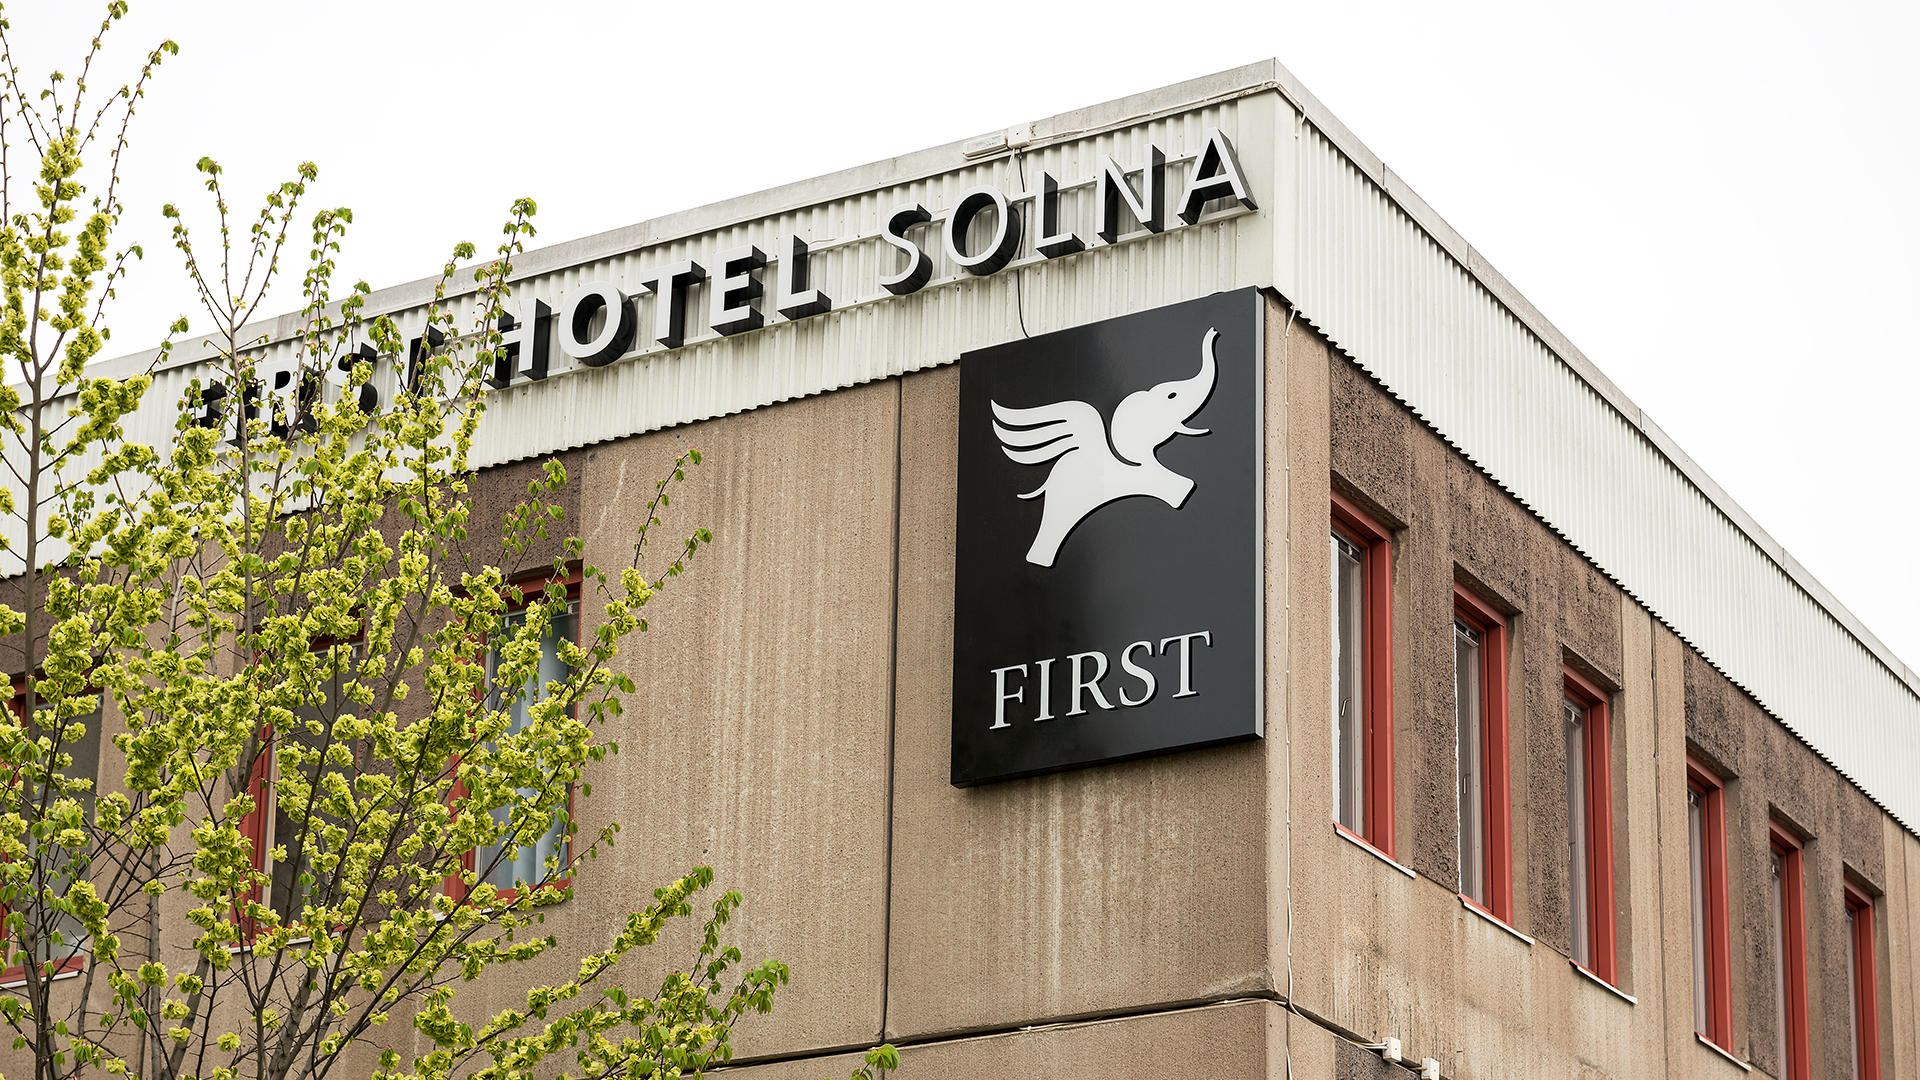 FirstSolna_Exterior03